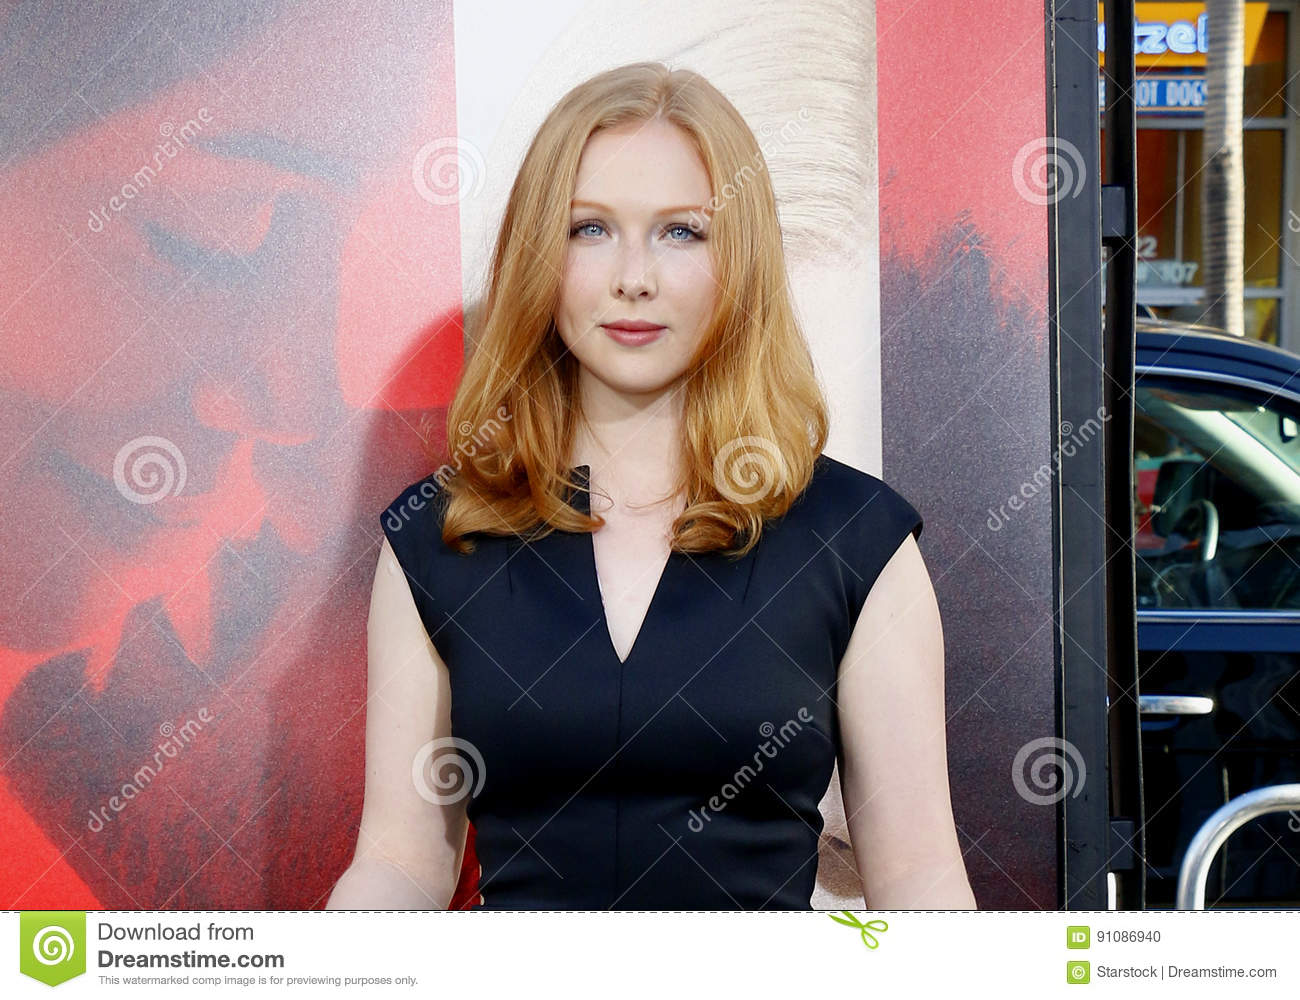 Discussion on this topic: Yara Khmidan HQ Free People Collection Shoot, molly-quinn-unforgettable-premiere-in-la/